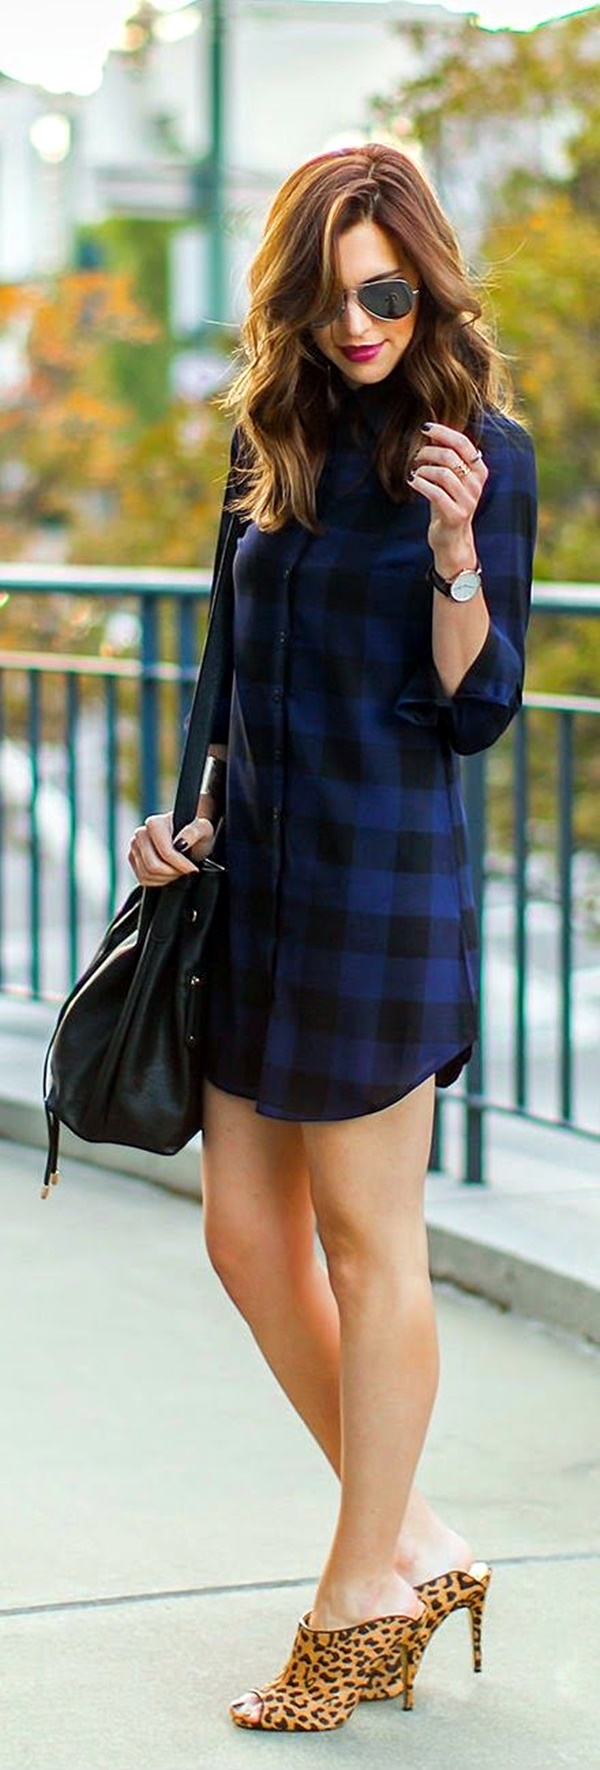 cute-outfit-ideas-22